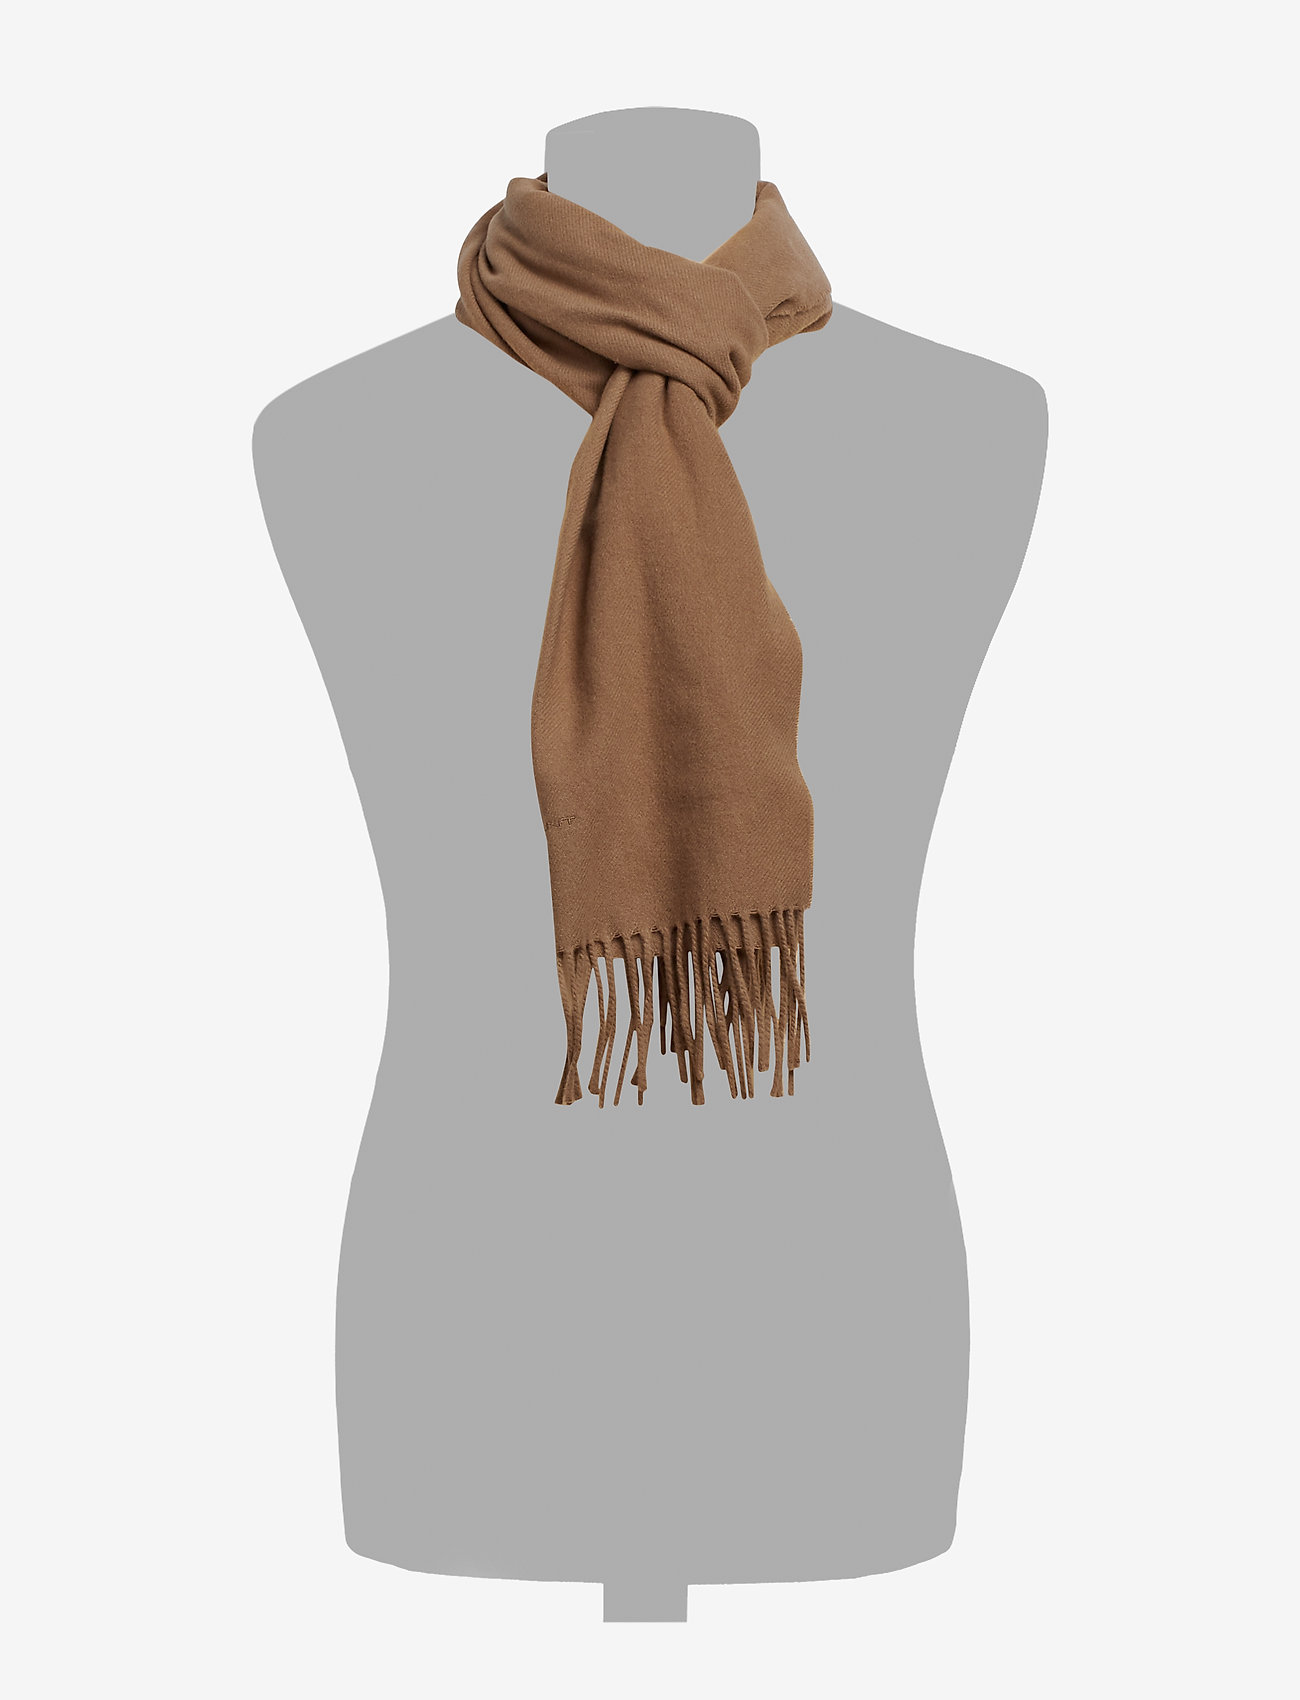 GANT - SOLID WOOL SCARF - scarves - warm khaki - 1